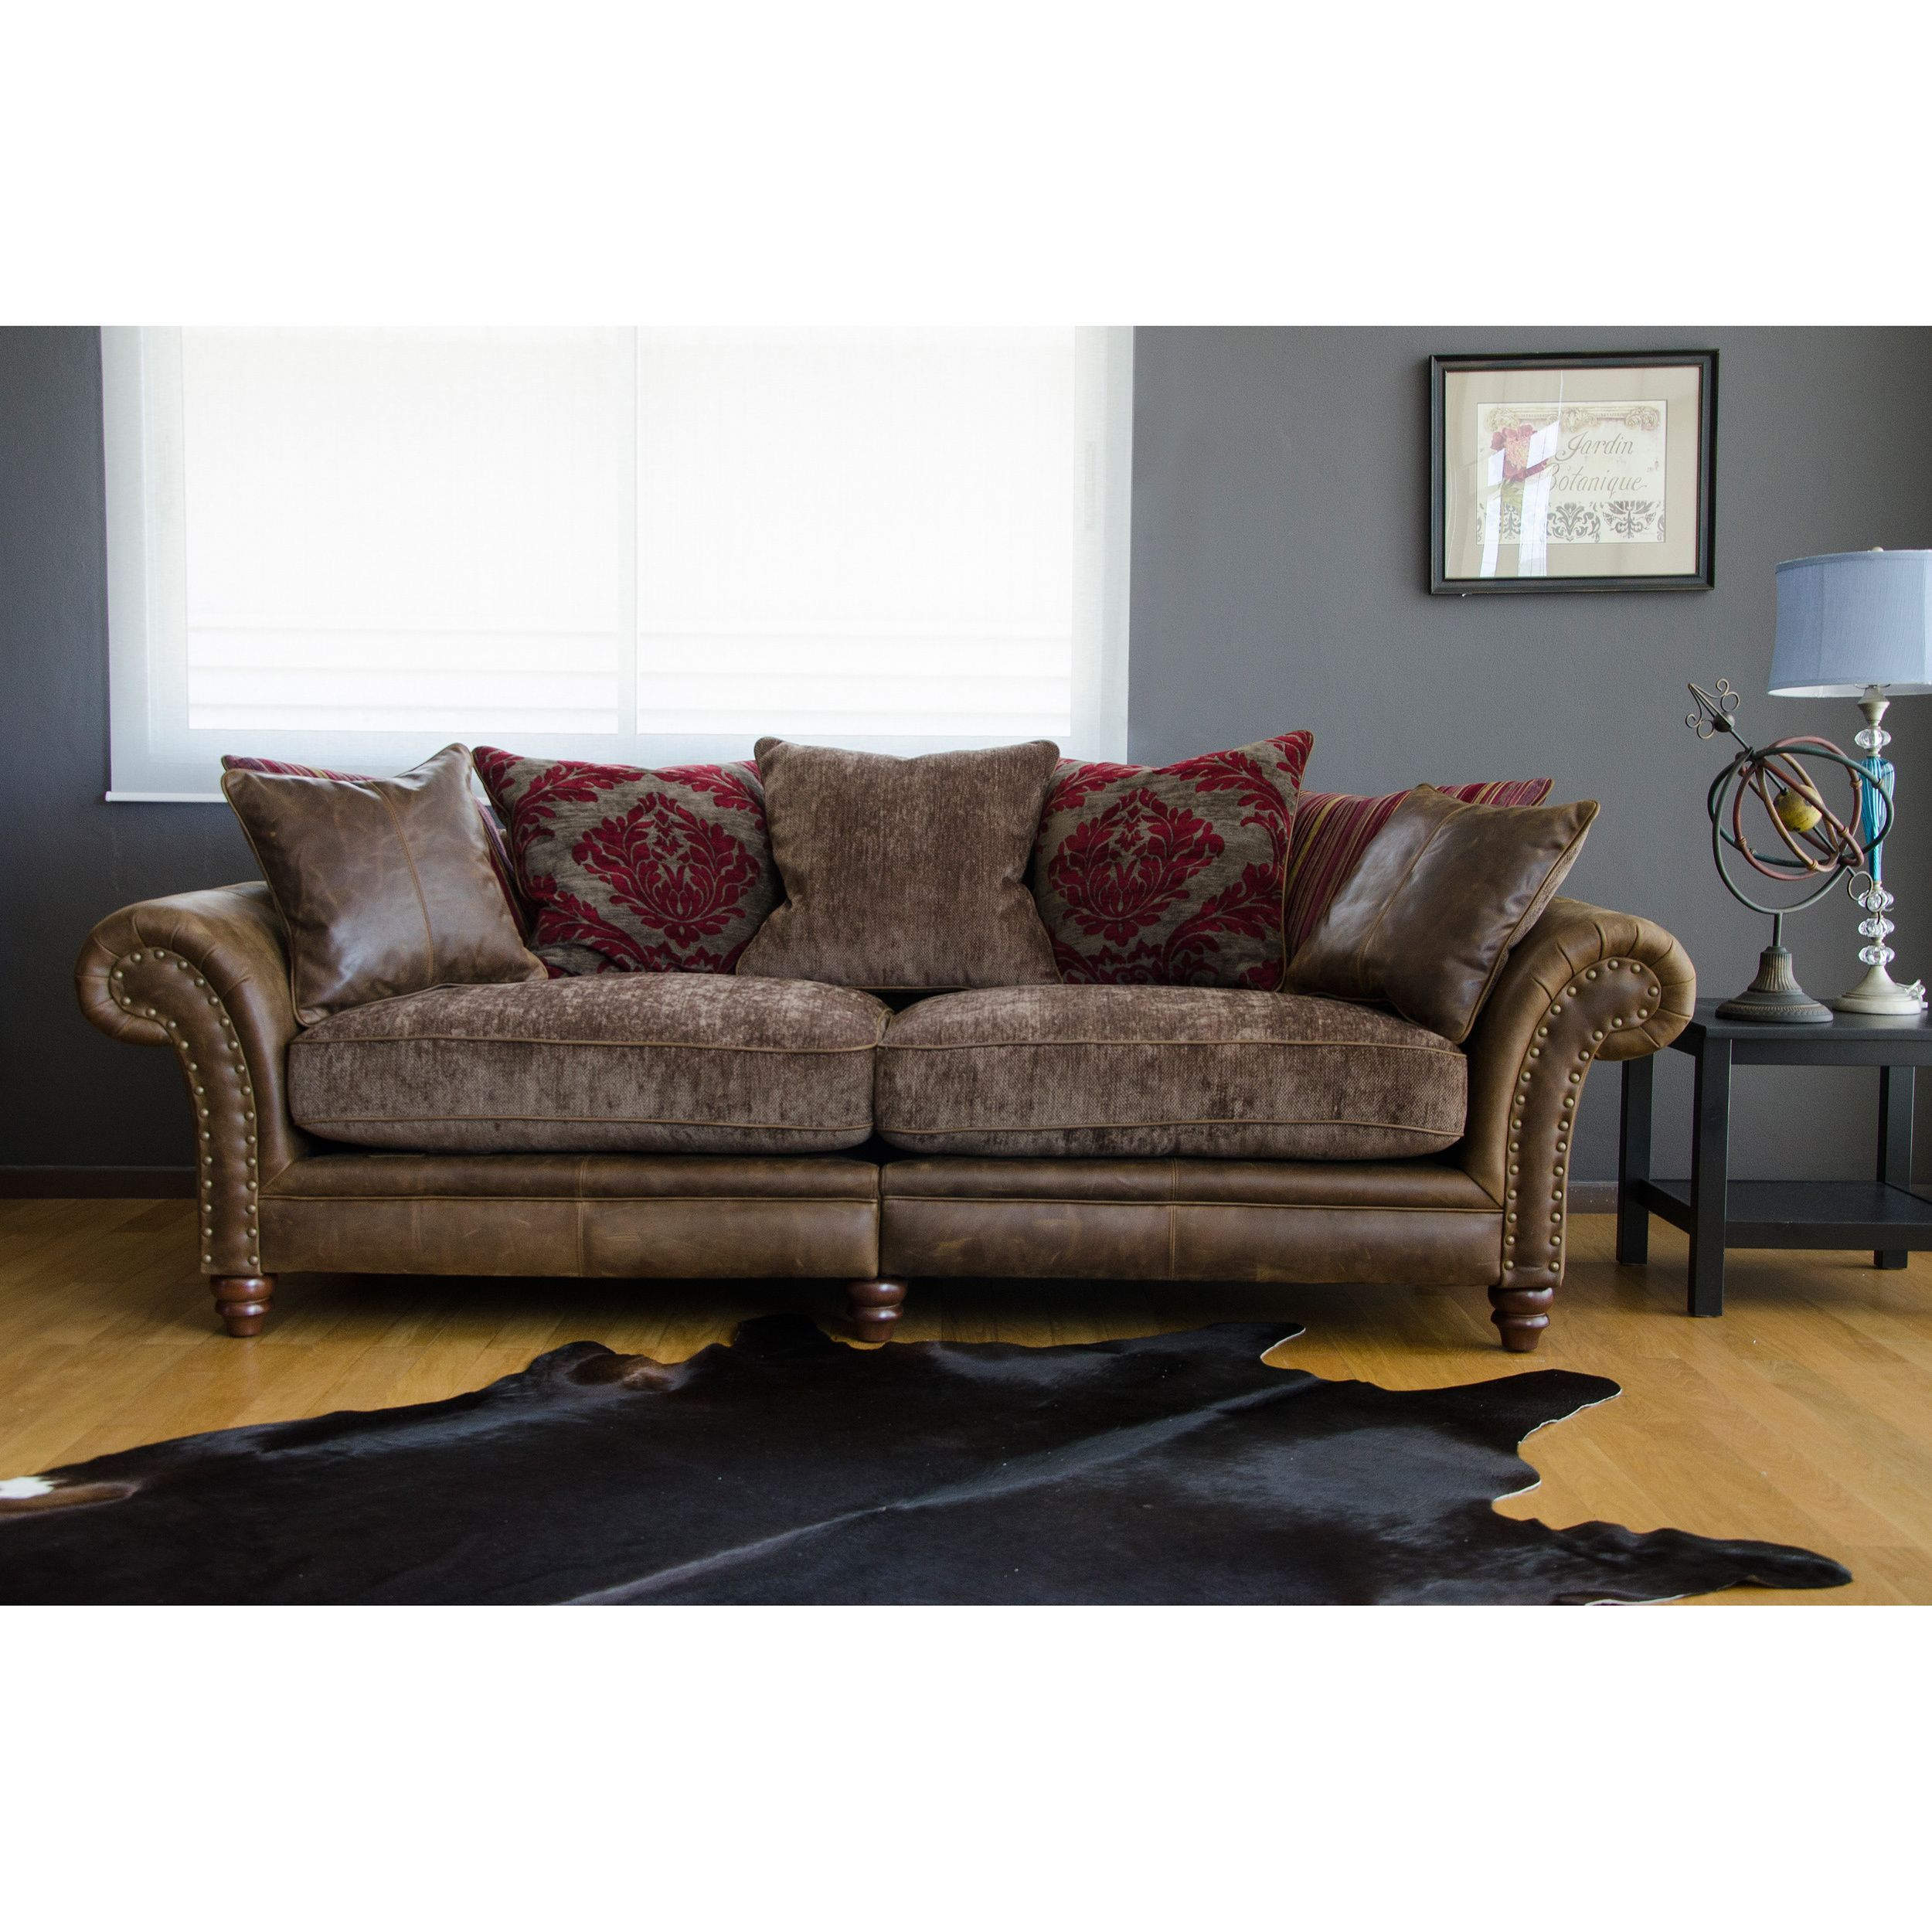 Hudson Sofa Collection Reviews Hudson Leather Sofa Reviews Deals Prices 80005154